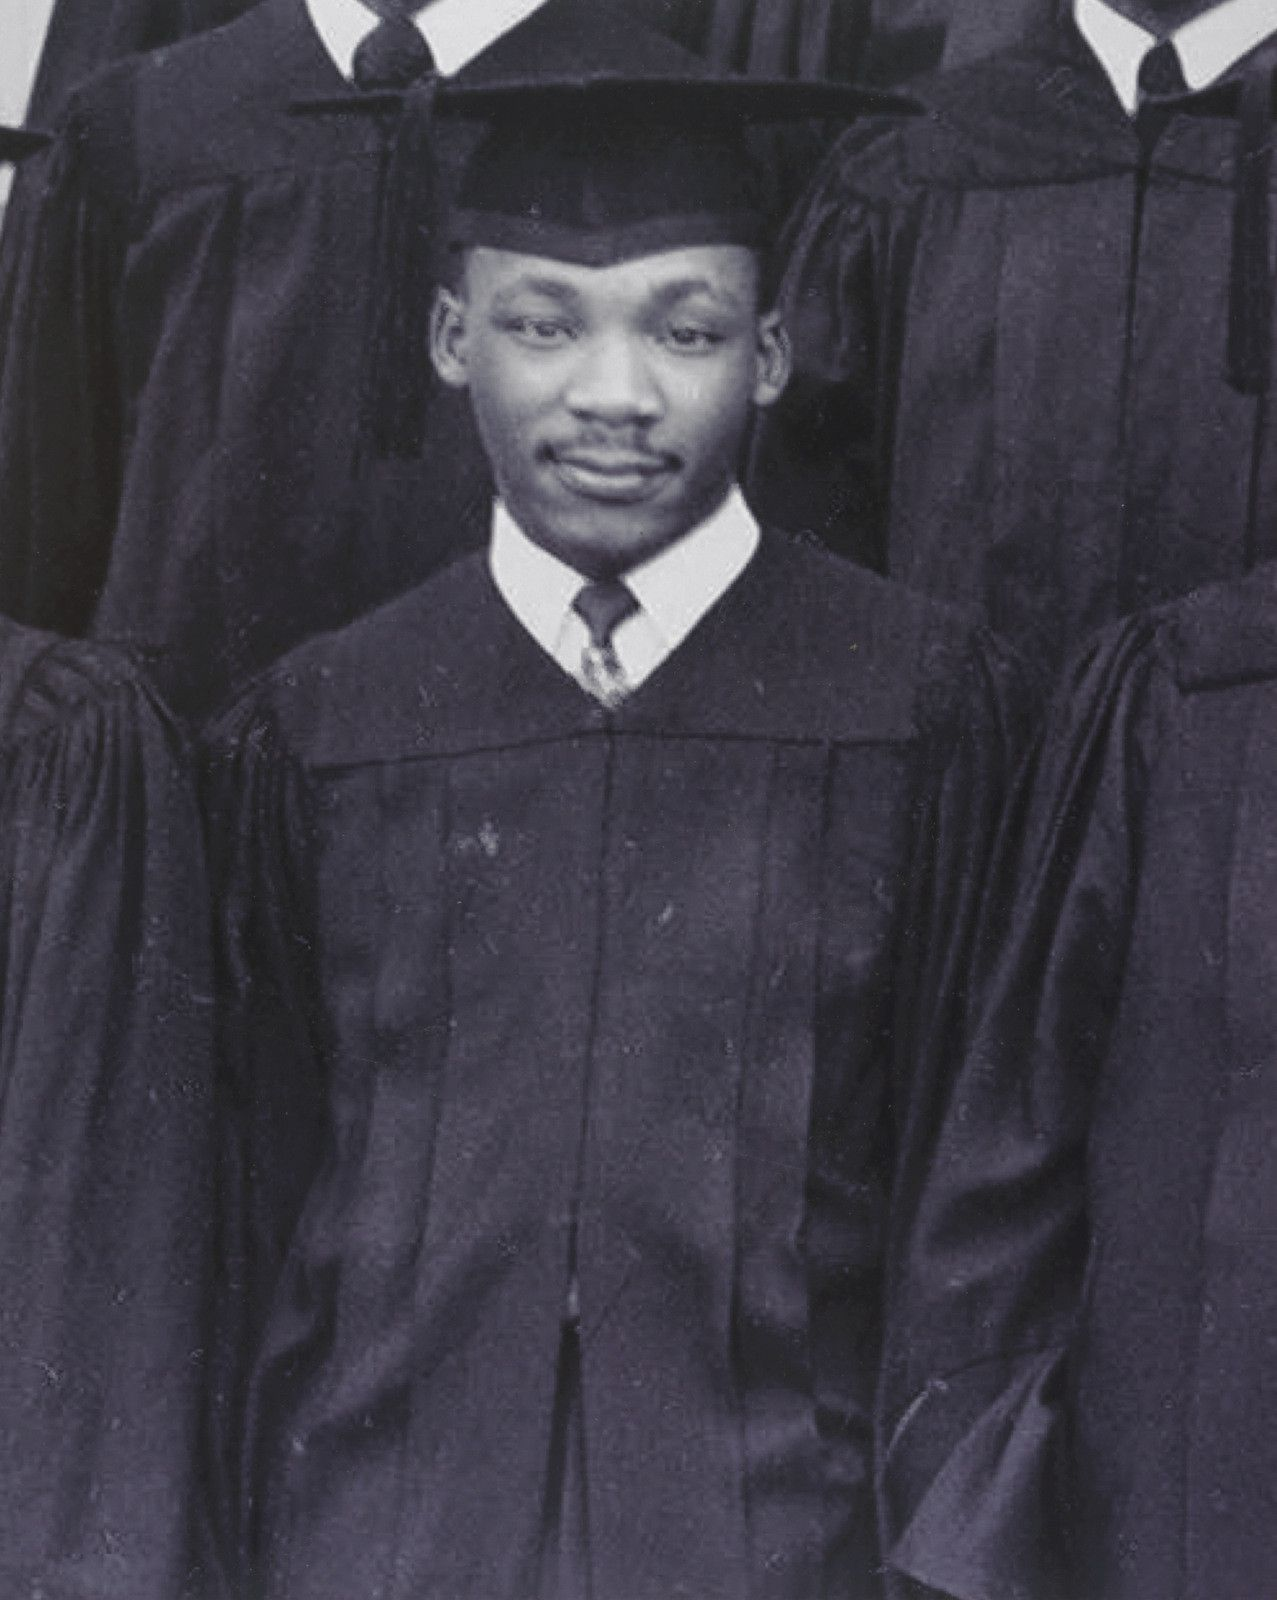 Look College Photos Of Martin Luther King Jr